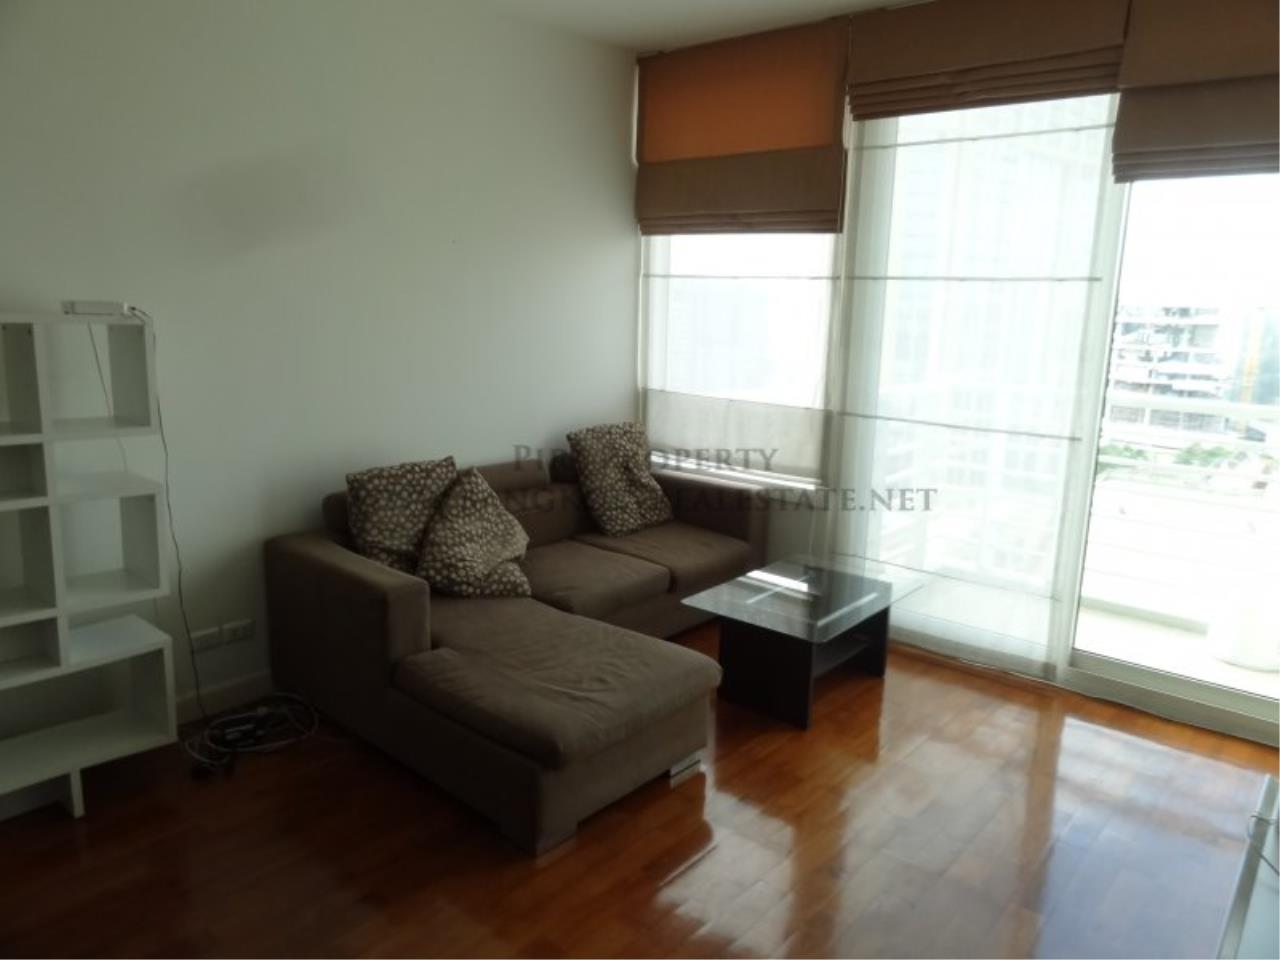 Piri Property Agency's Siri Residence - Big 1 Bedroom Condo in Sukhumvit 24 1